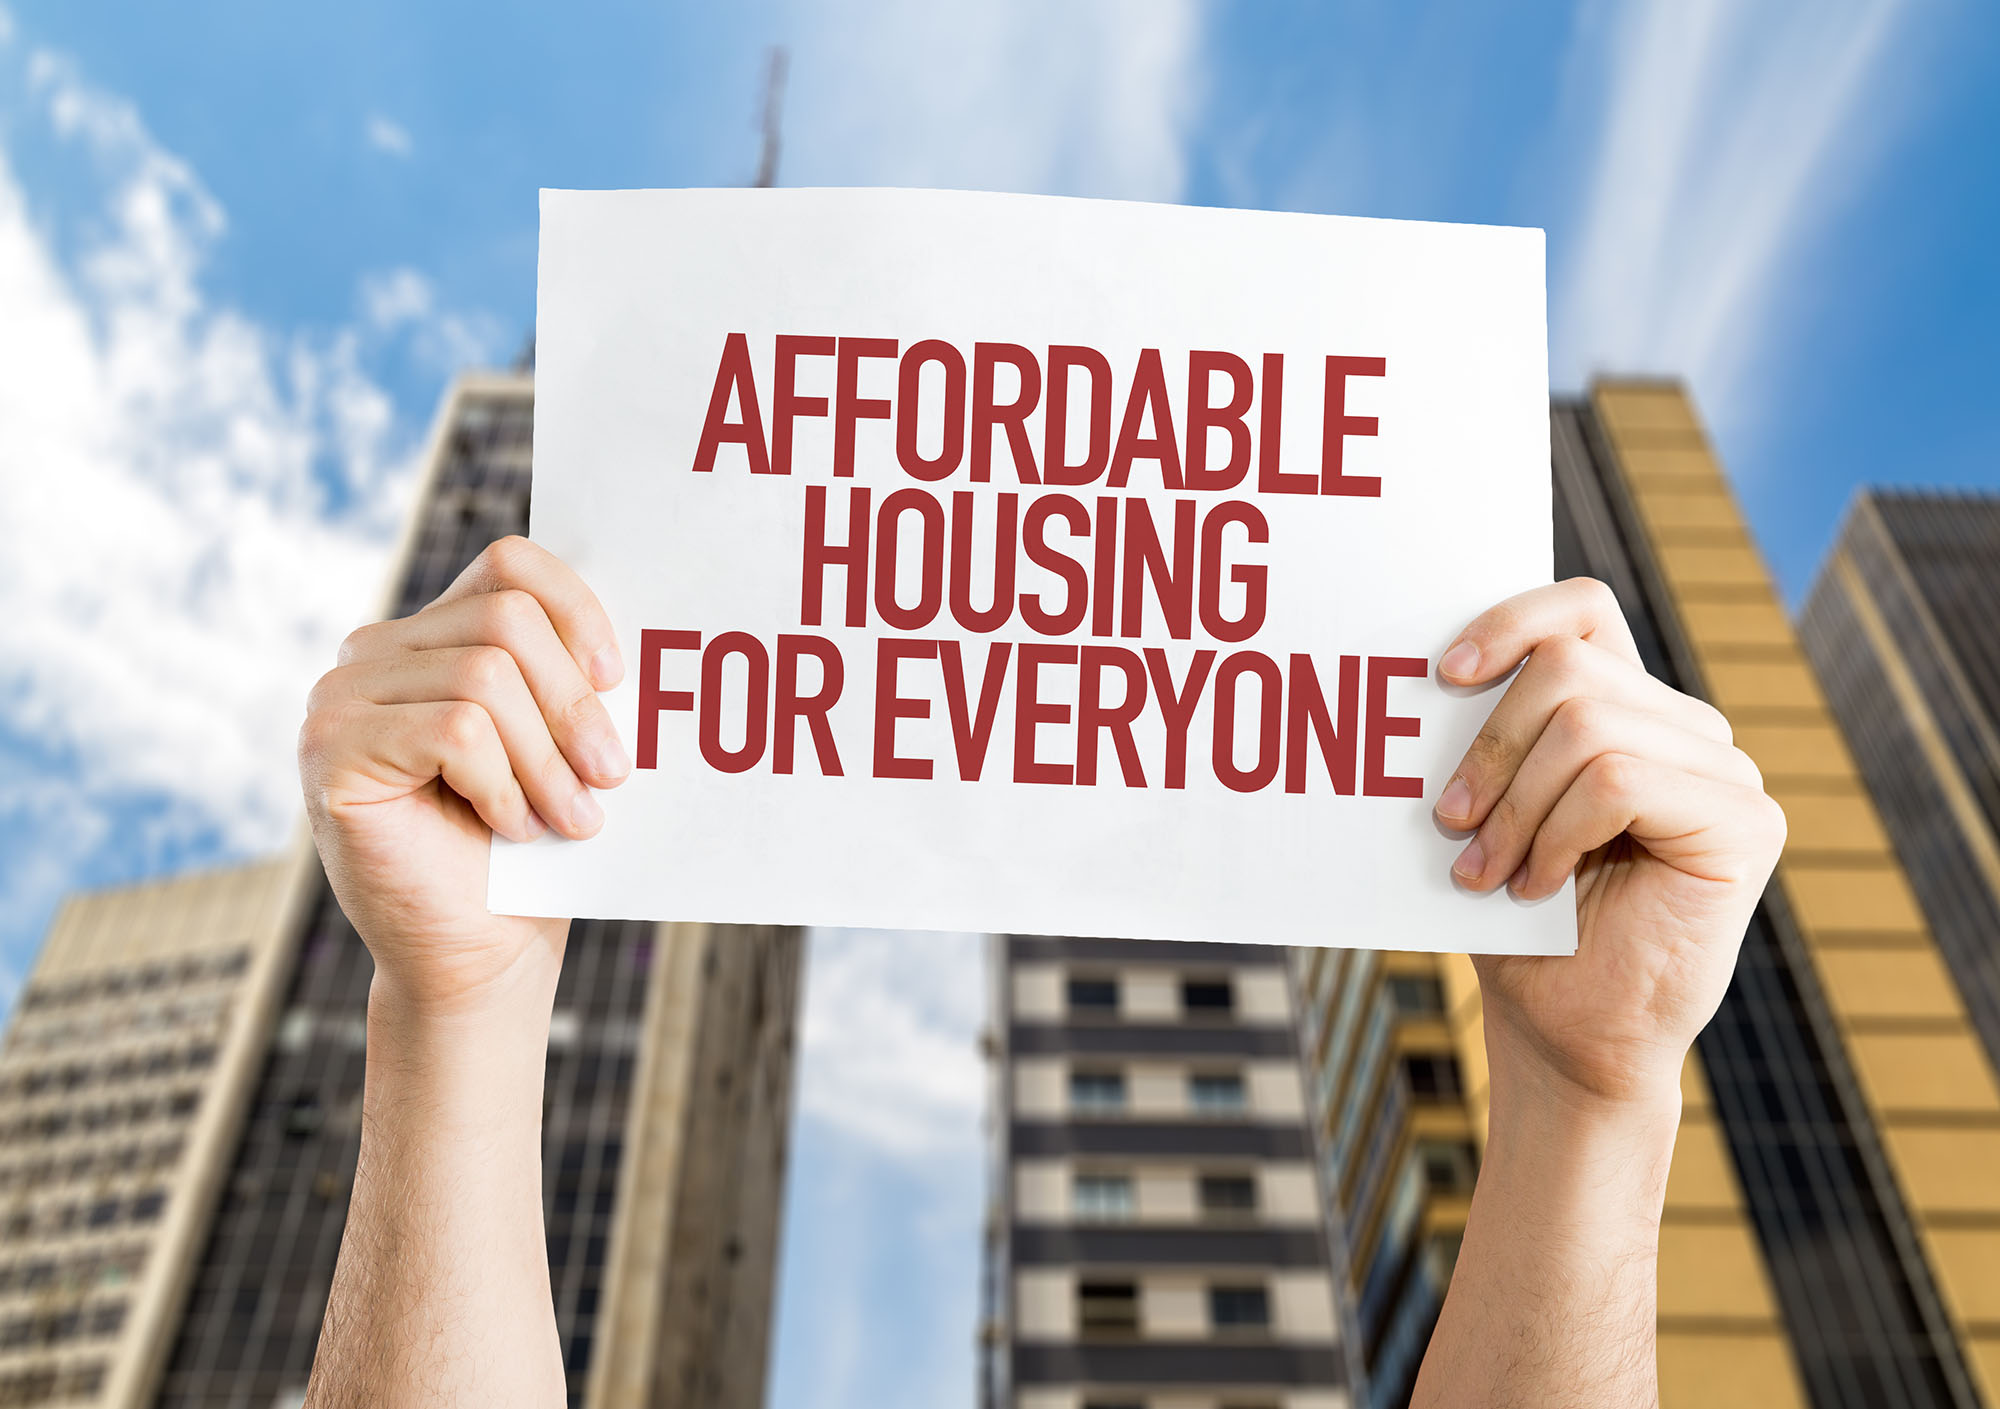 """A sign that says """"Affordable Housing for Everyone"""" being held up by two hands with a blue sky and buildings in the background"""